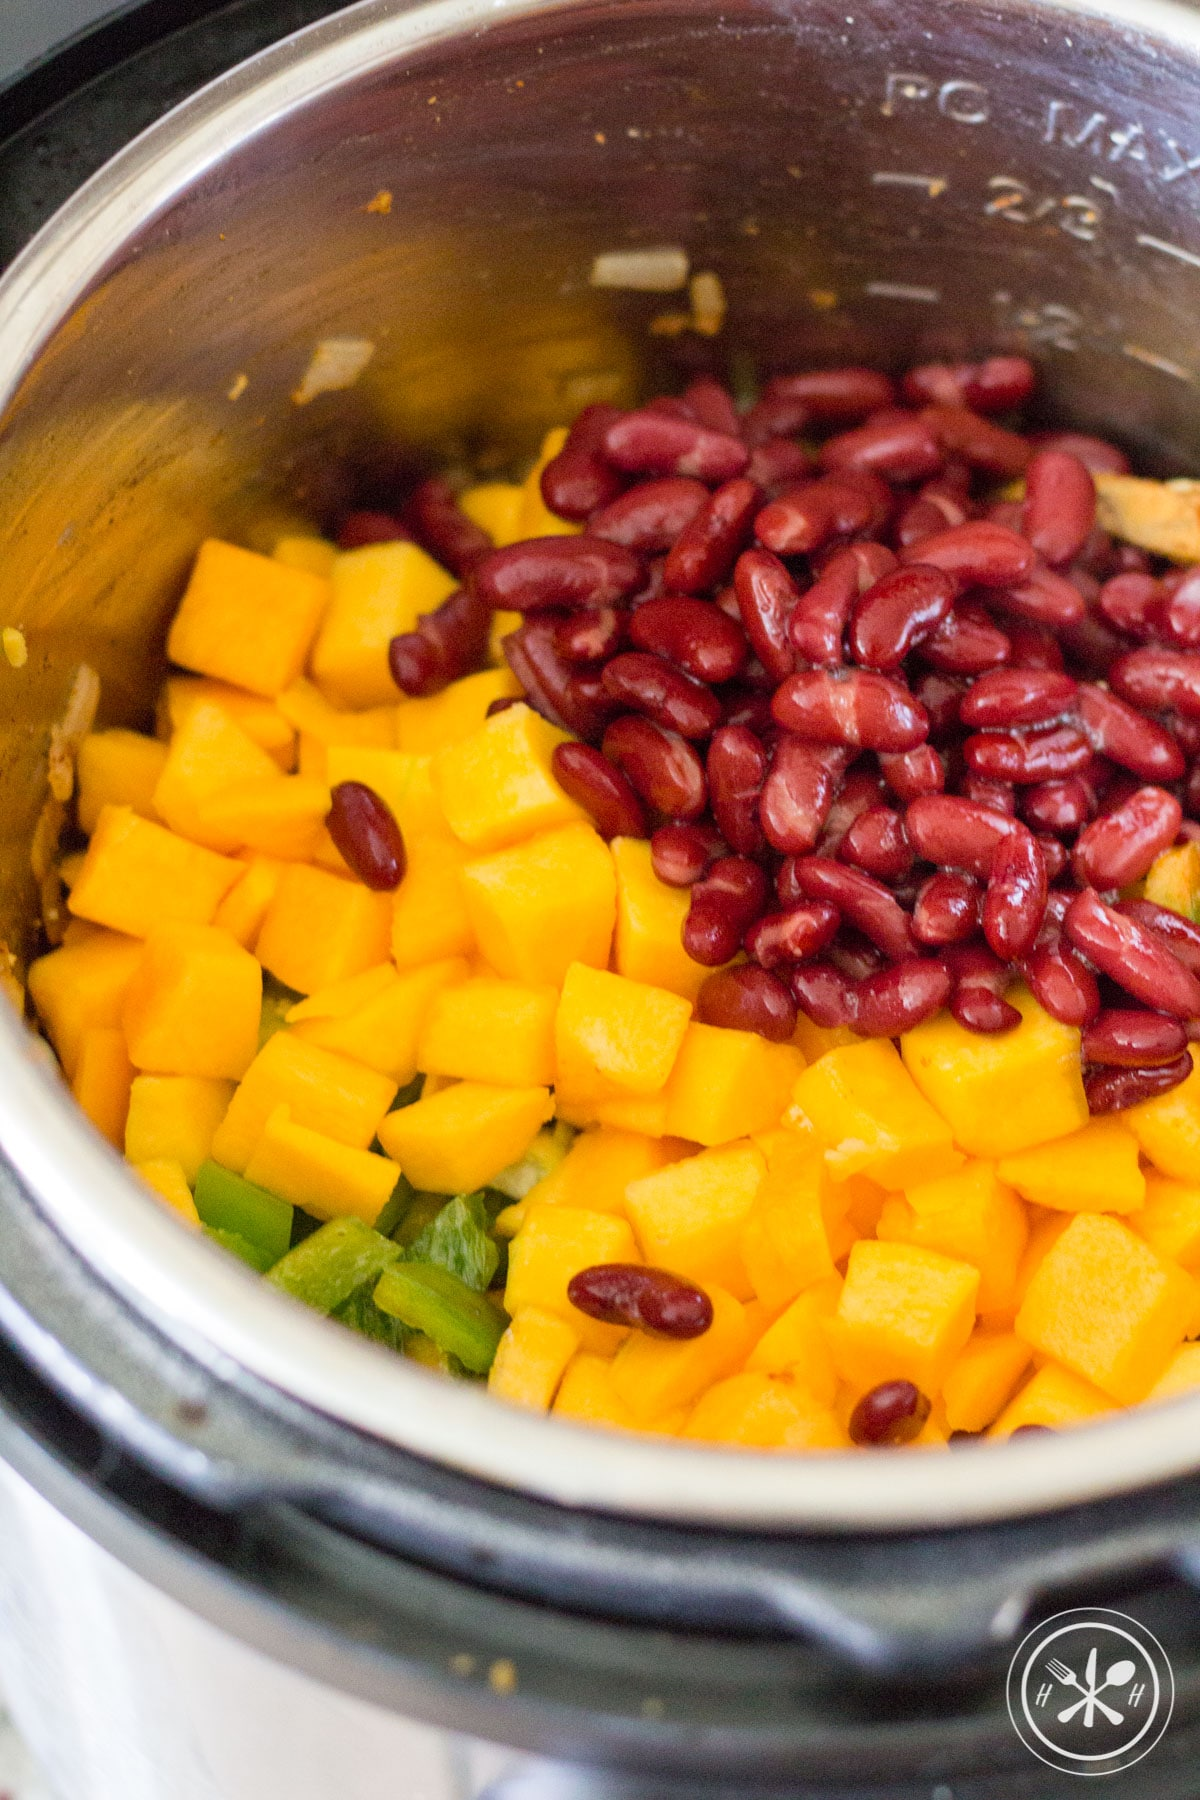 Healthy chili ingredients in the instant pot.